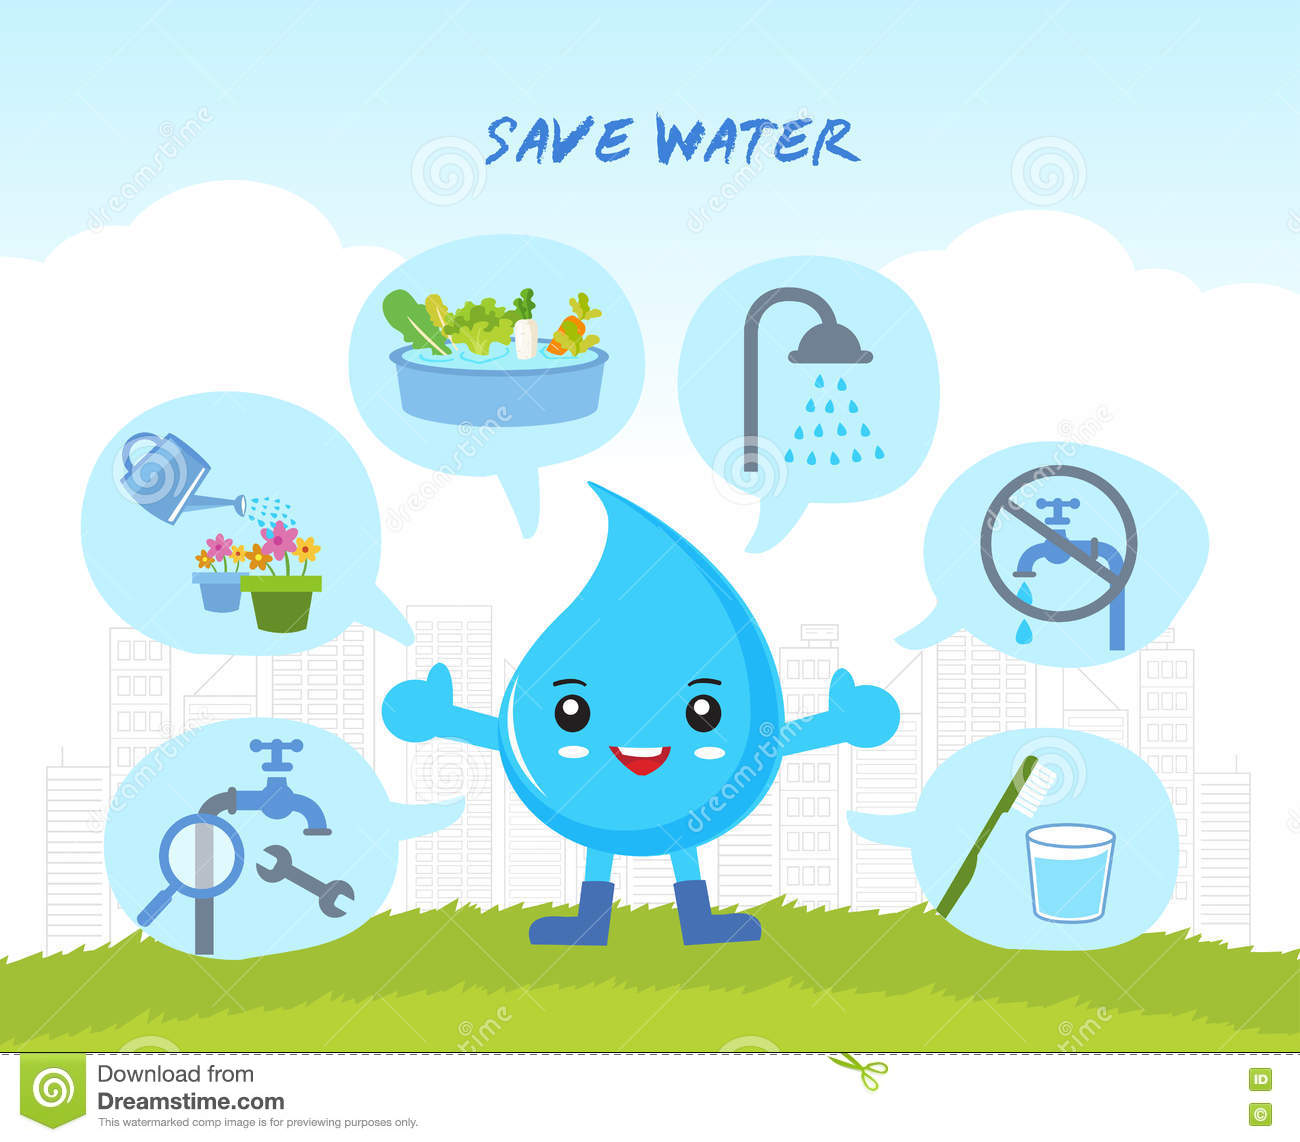 Save the water, infographic